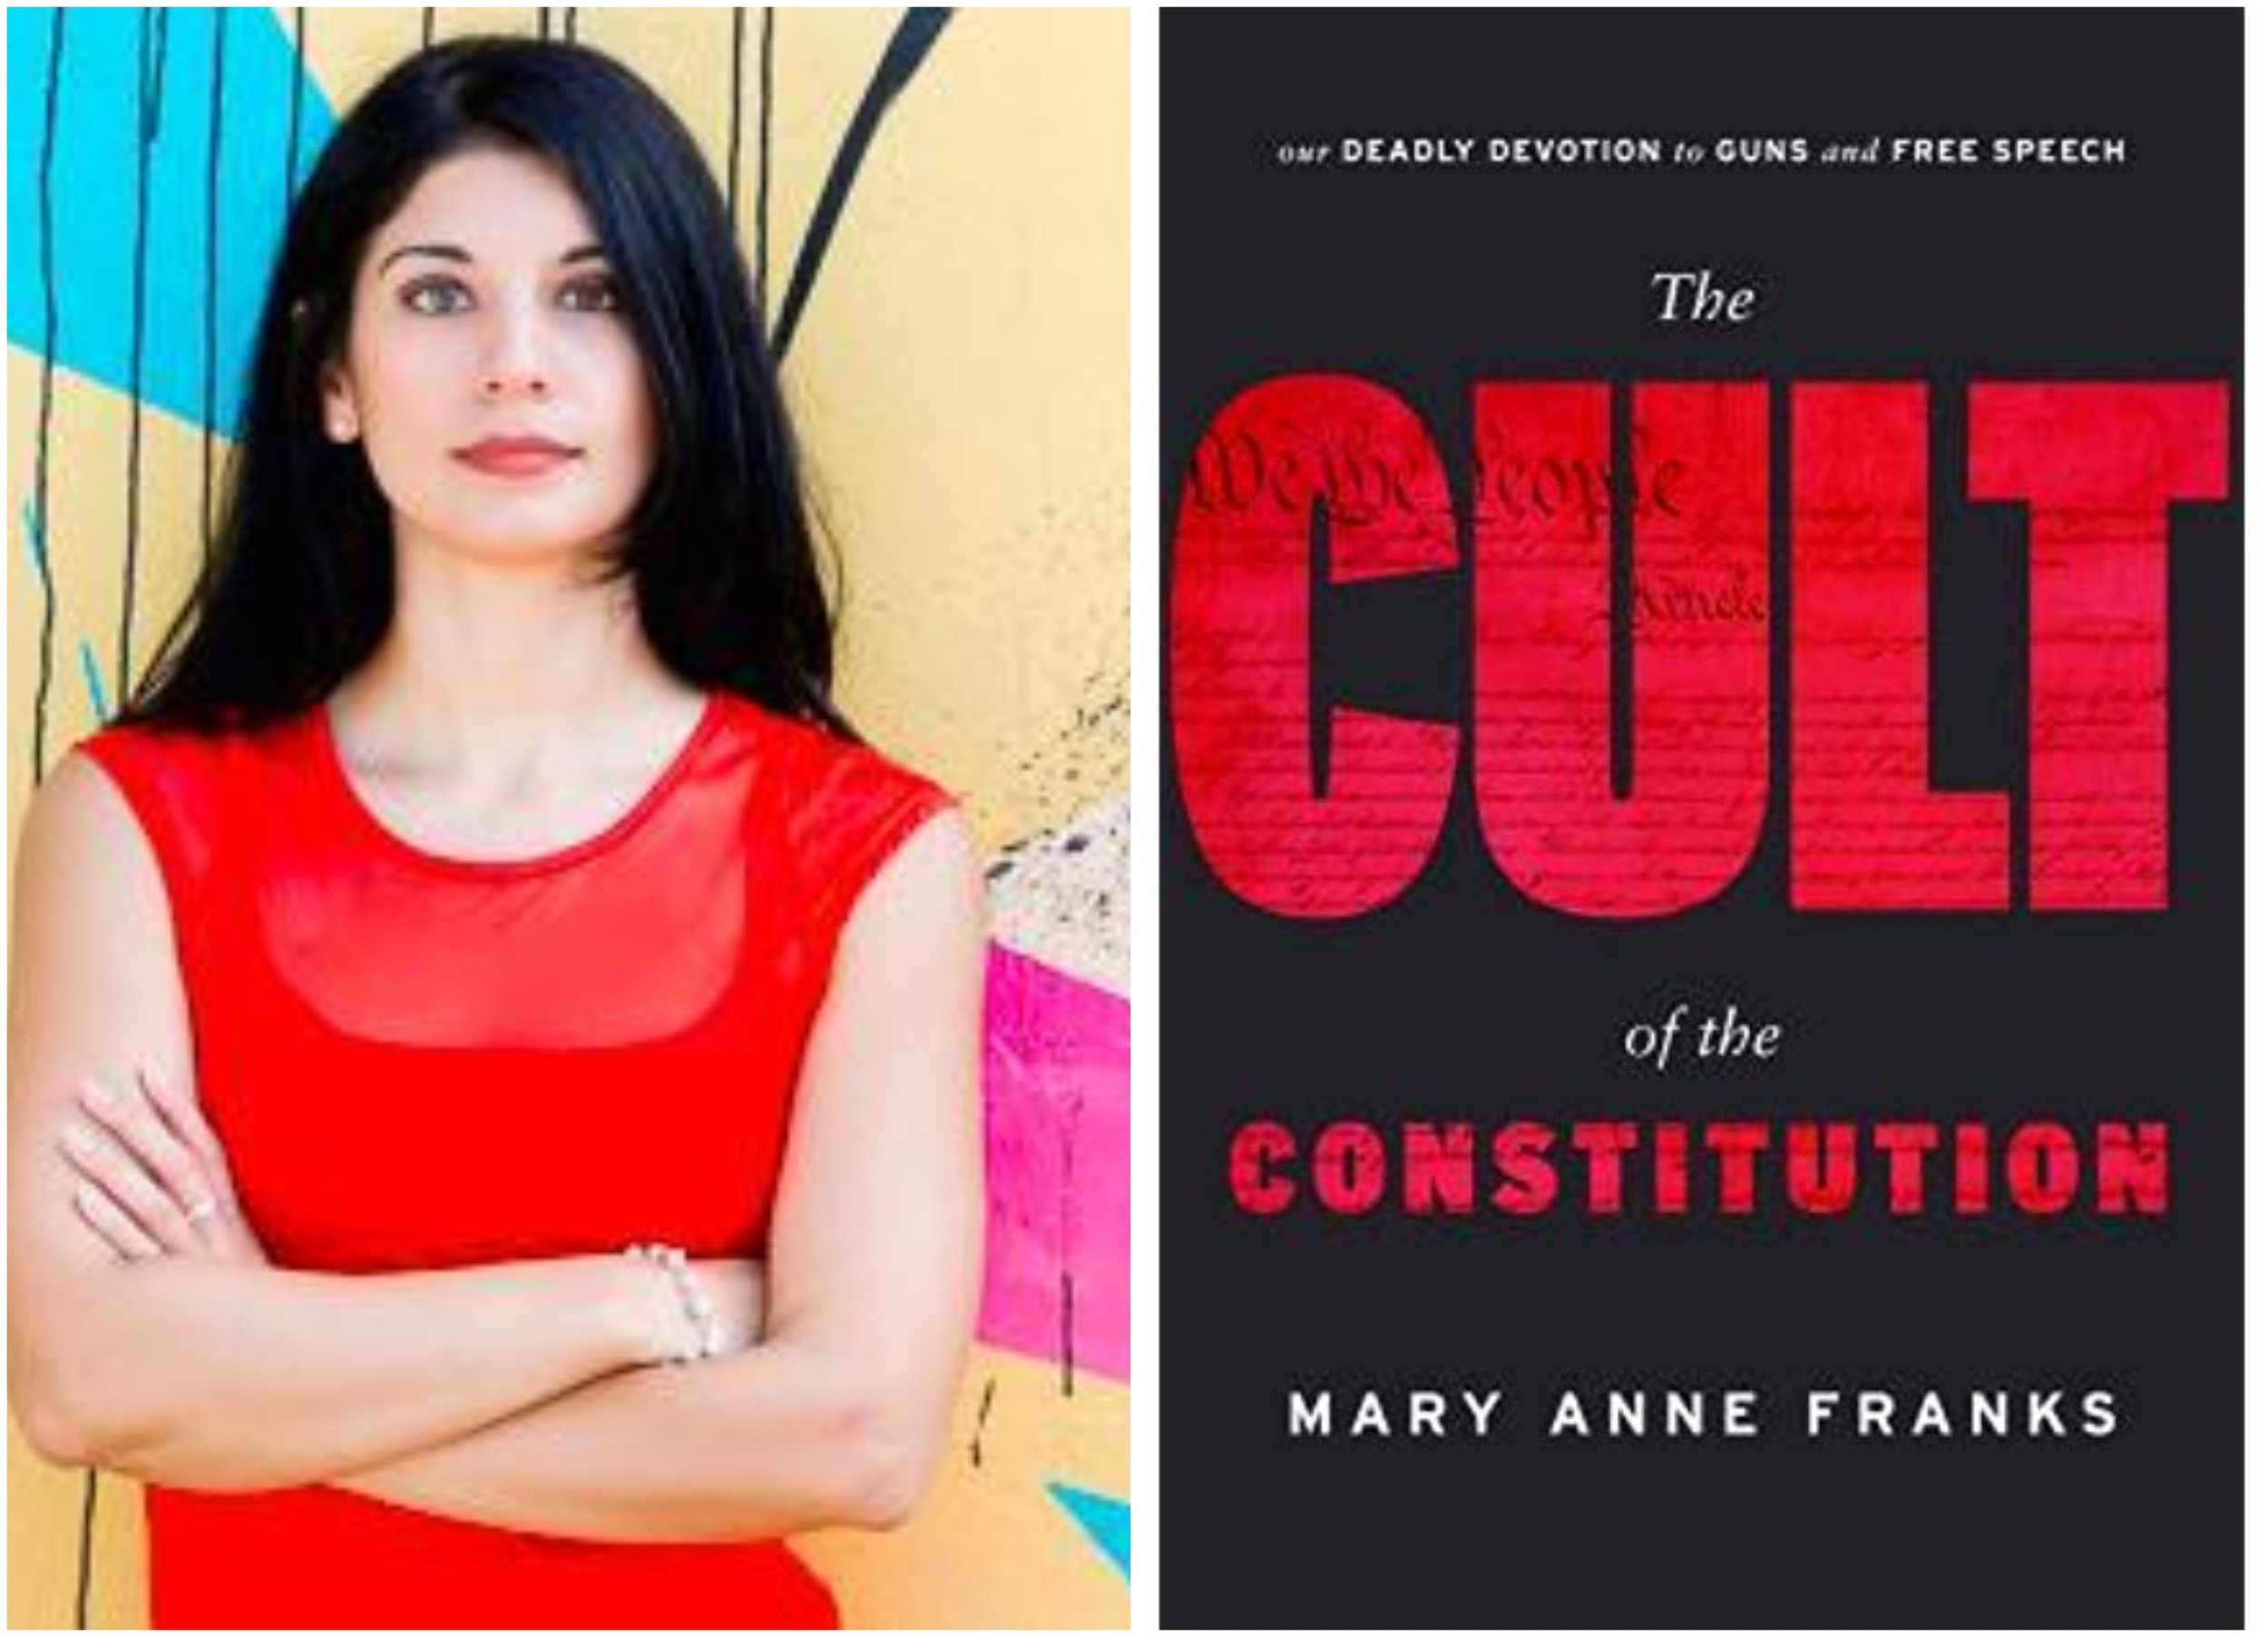 FREE SPEECH 65: The Cult of the Constitution, with Mary Anne Franks -